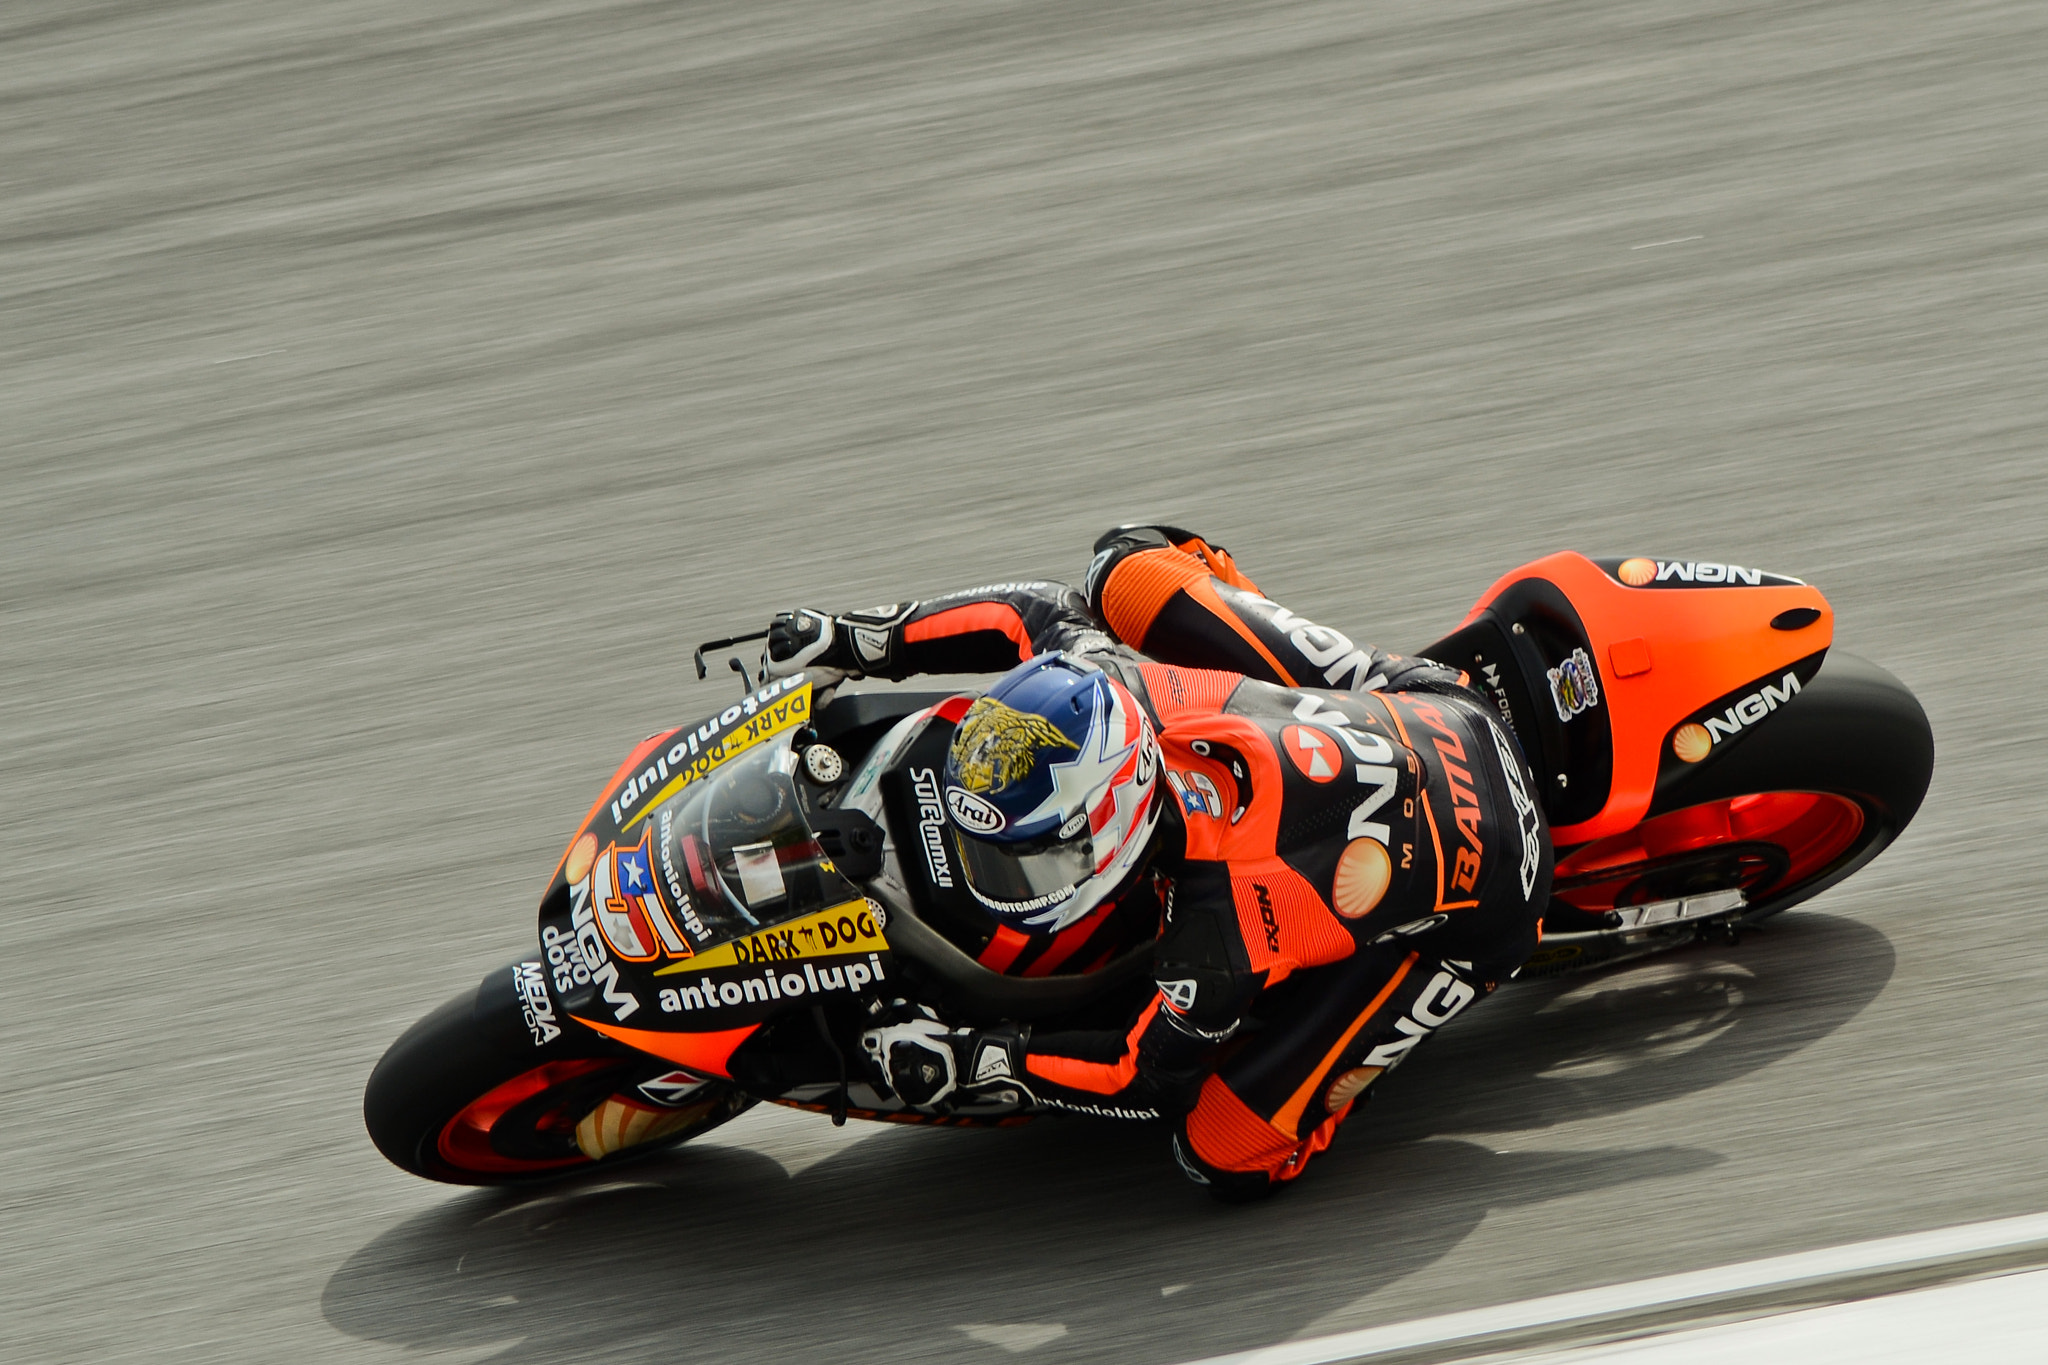 Photograph Colin Edwards by Mohd Hisyam Saleh on 500px